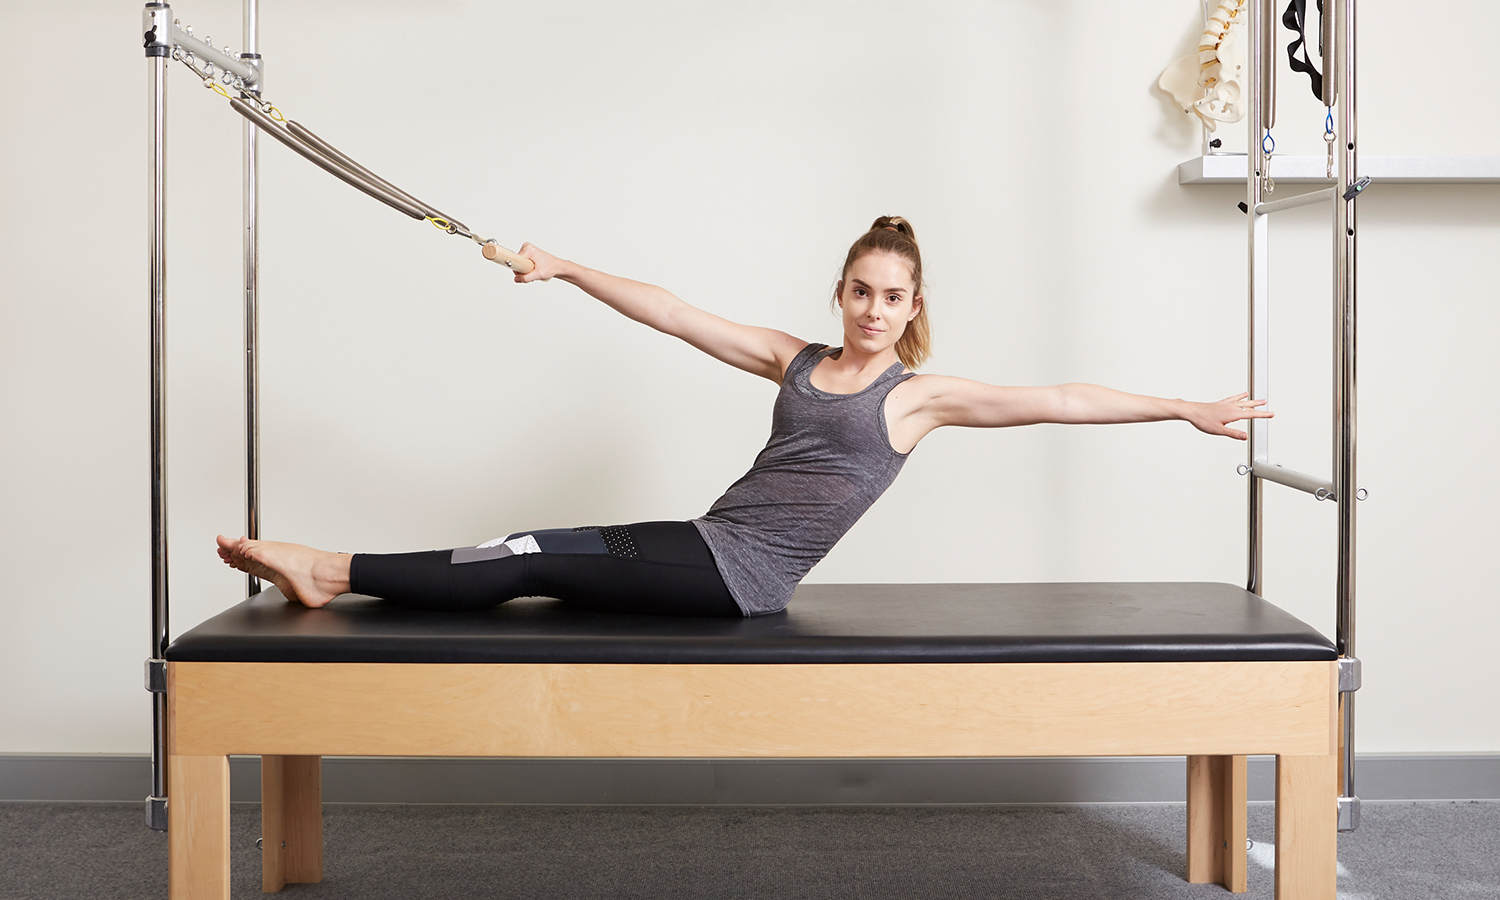 Pilates is a physical fitness system that comprises a system of low-impact exercises focusing on flexibility, control, strength and endurance. -